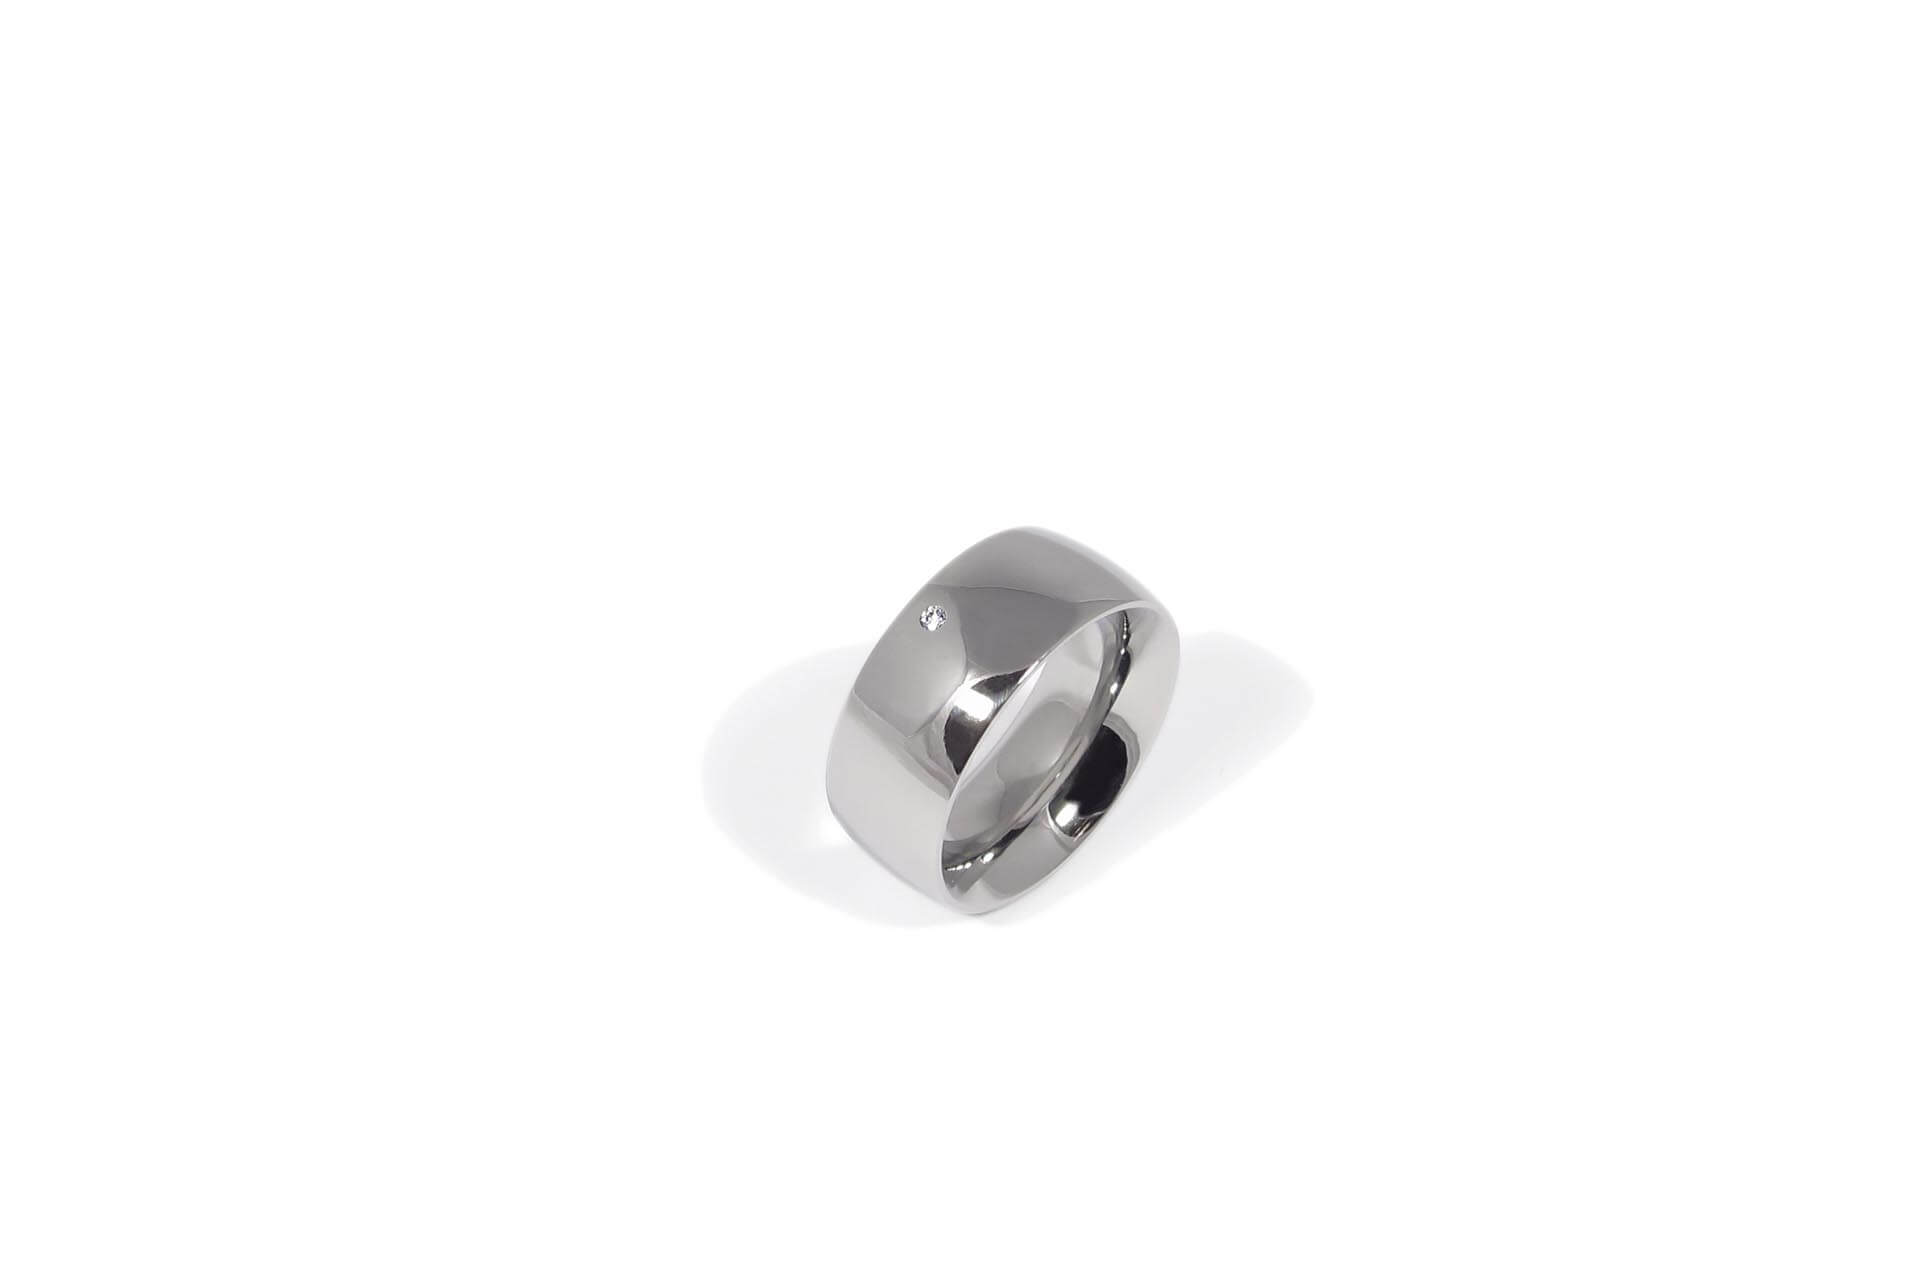 Polished stainless steel ring with white diamond. Top view. R.9.005